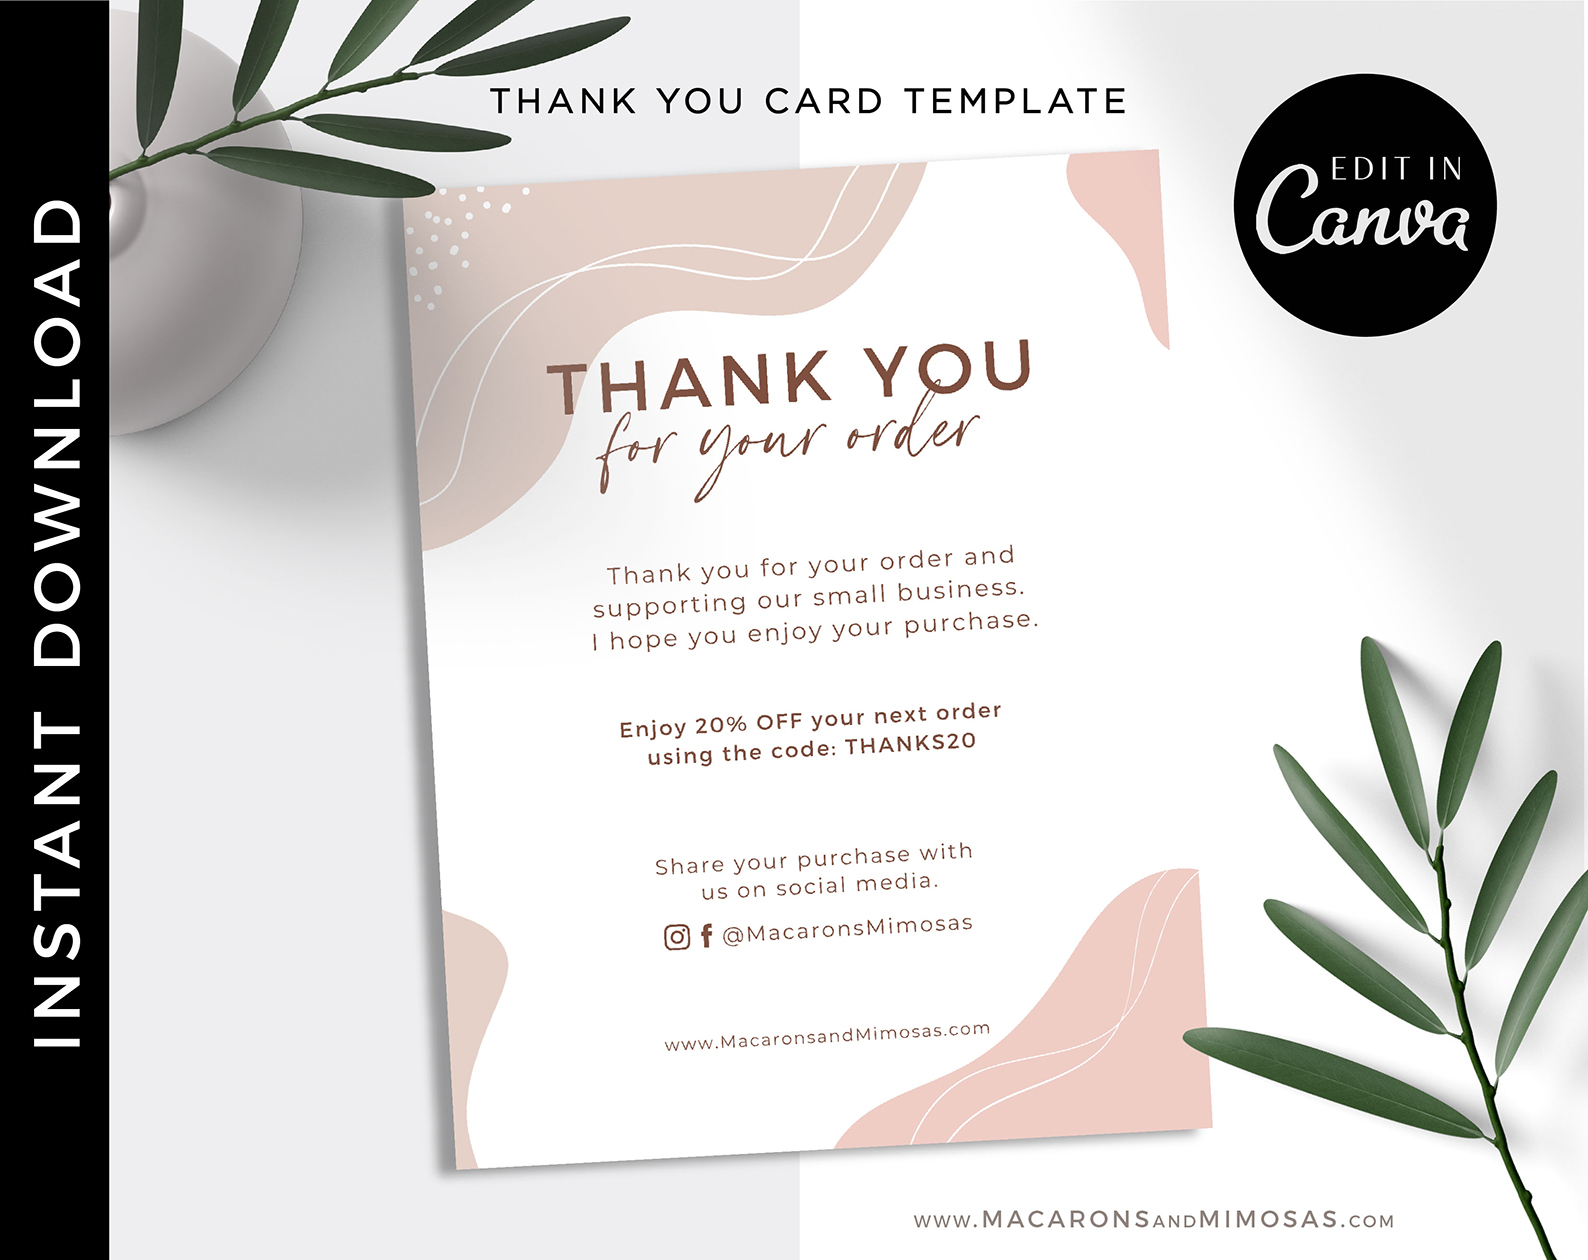 Thank You For Your Purchase Discount Card Thank You Card Business Card